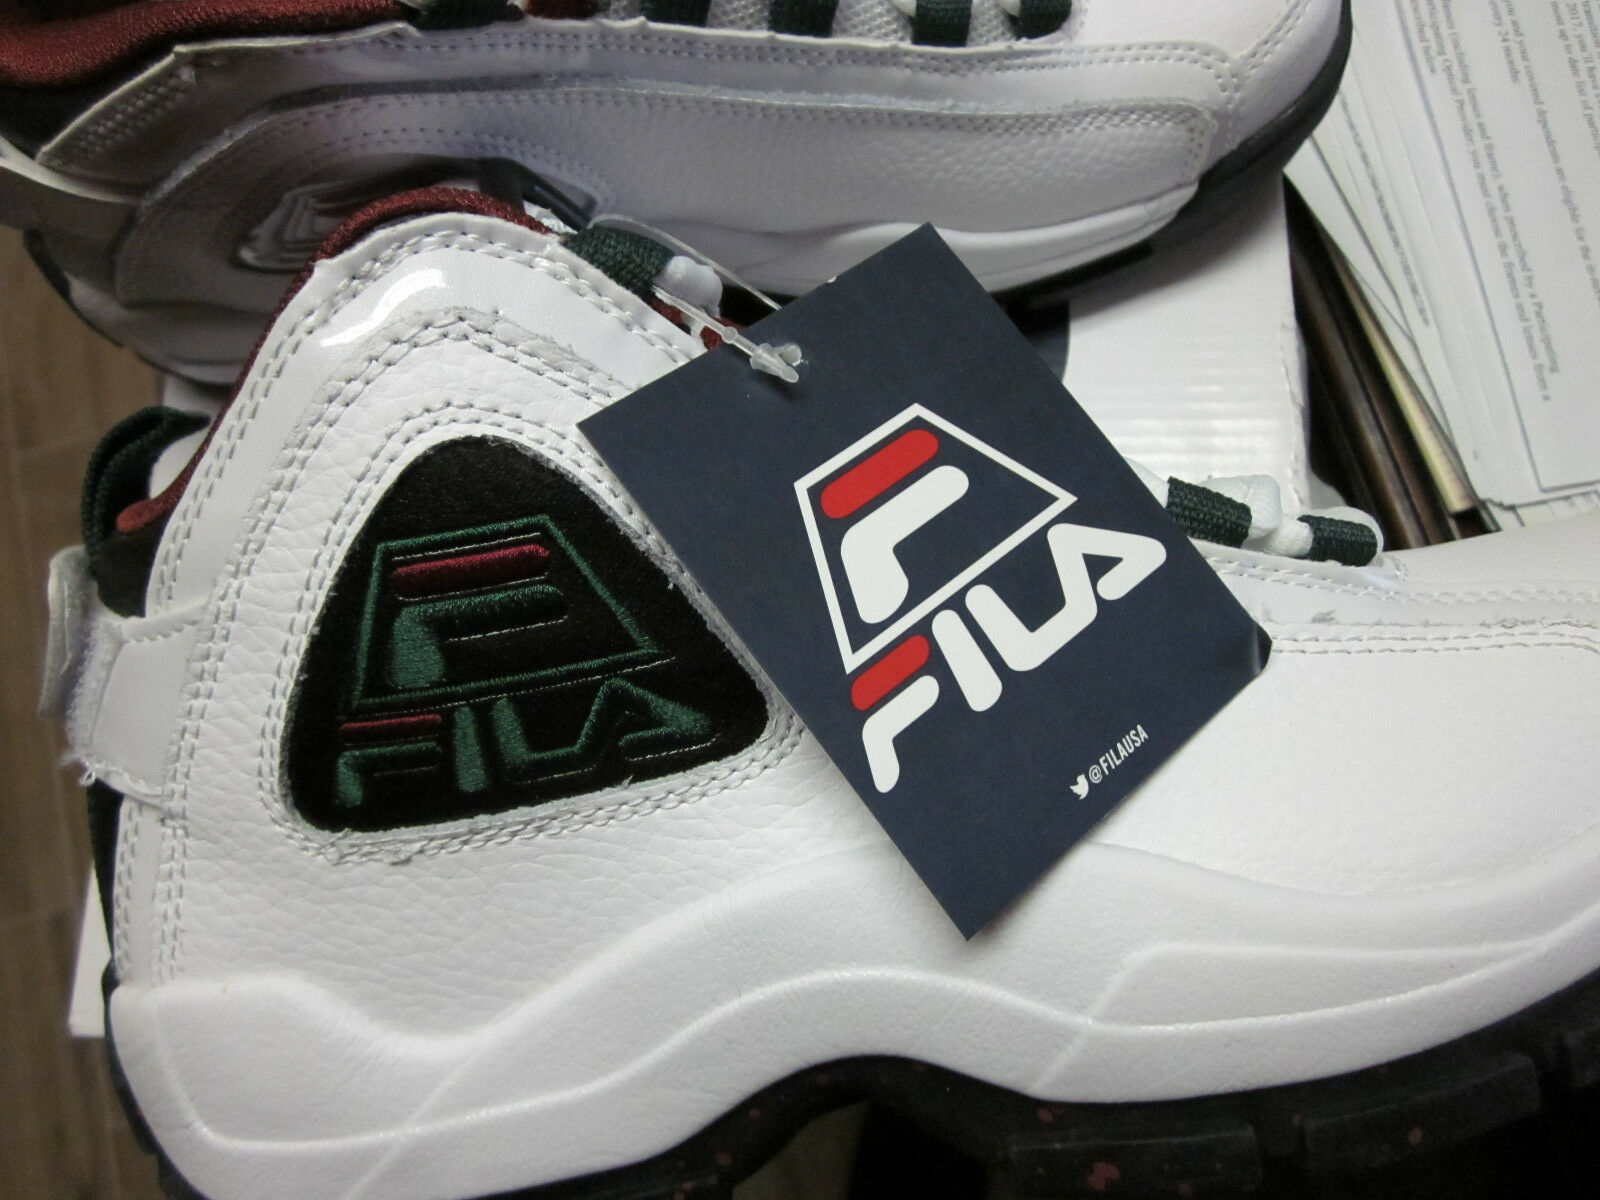 dividir aceptar seco  NEW FILA 96 GRANT HILL RETRO LEATHER MENS BASKETBALL SNEAKERS SIZE 9 for  sale online